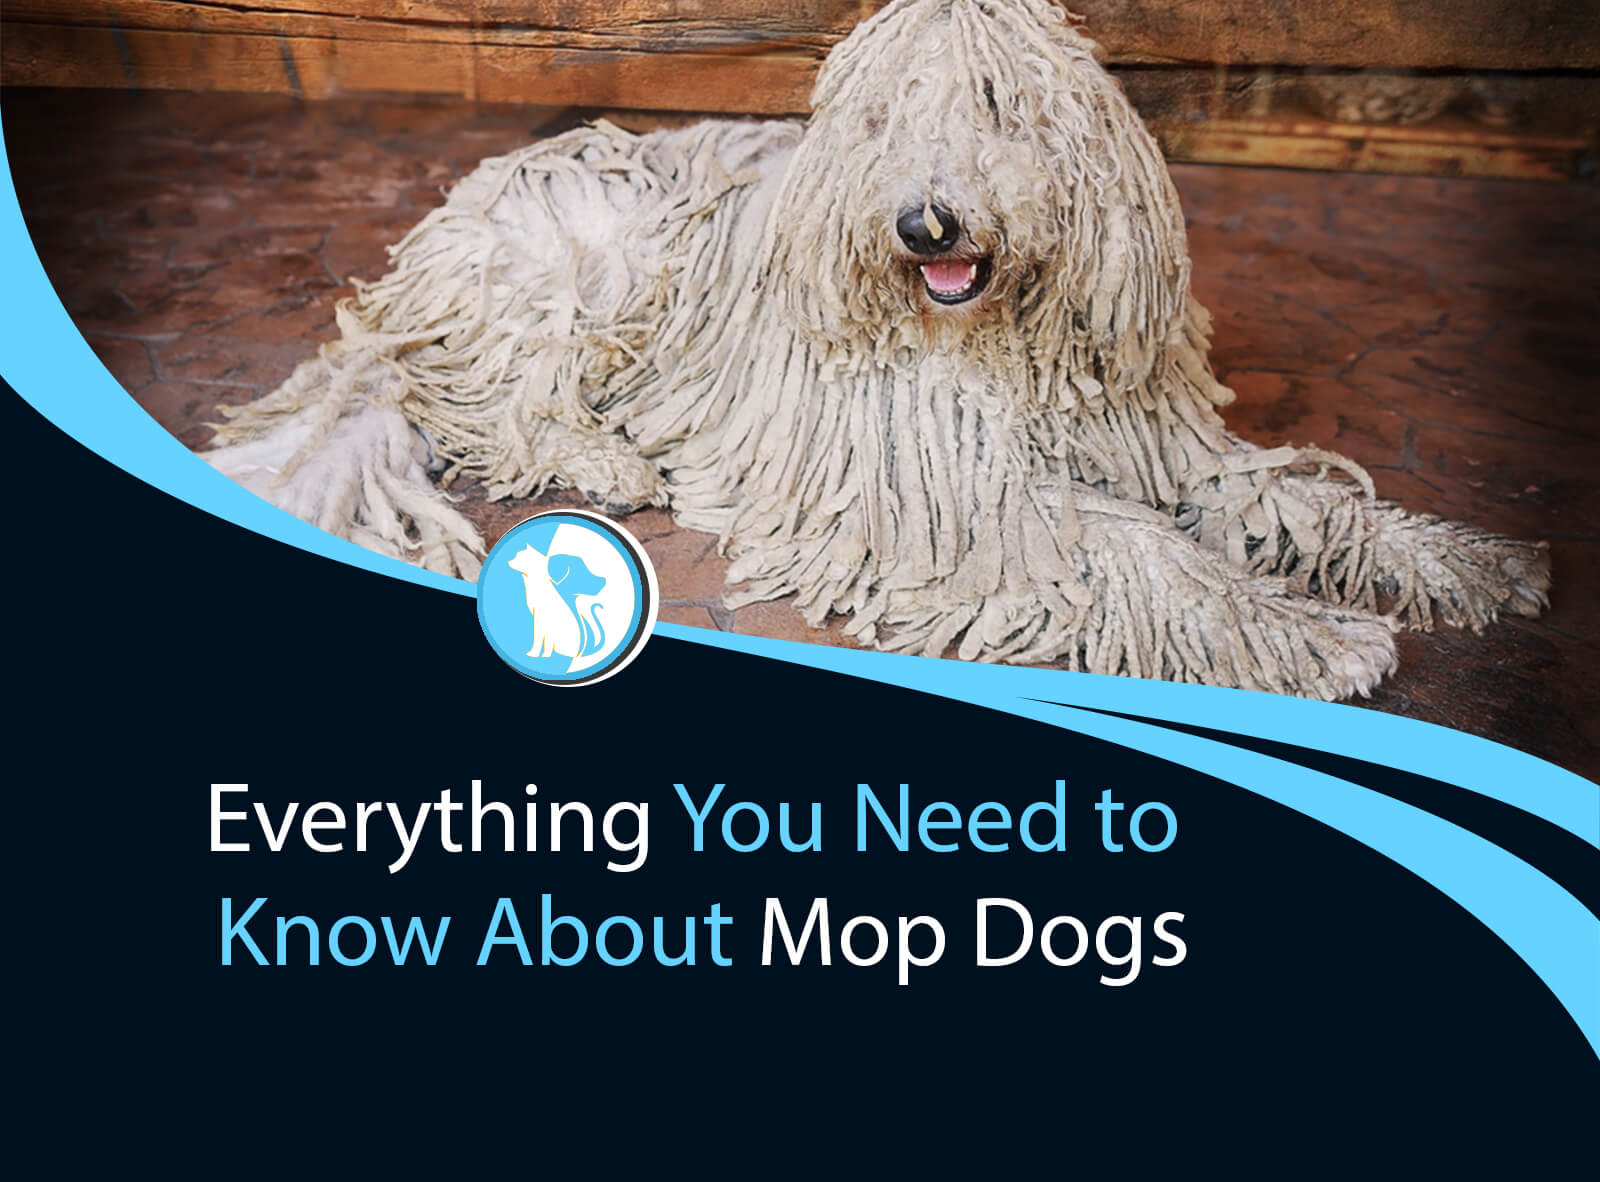 Everything You Need to Know About Mop Dogs